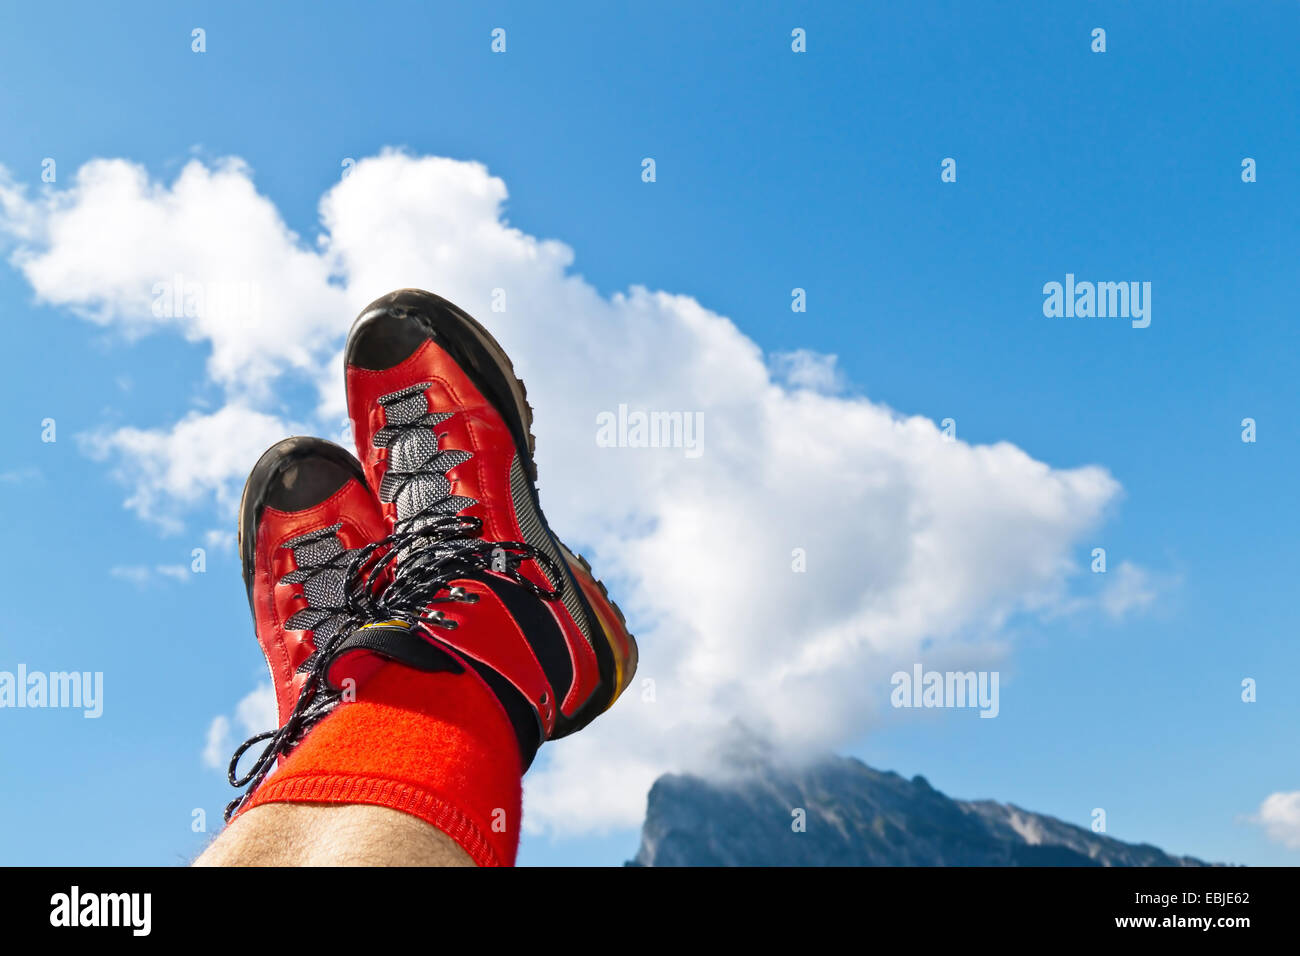 legs with red hiking boots rise up to the sky, Austria - Stock Image